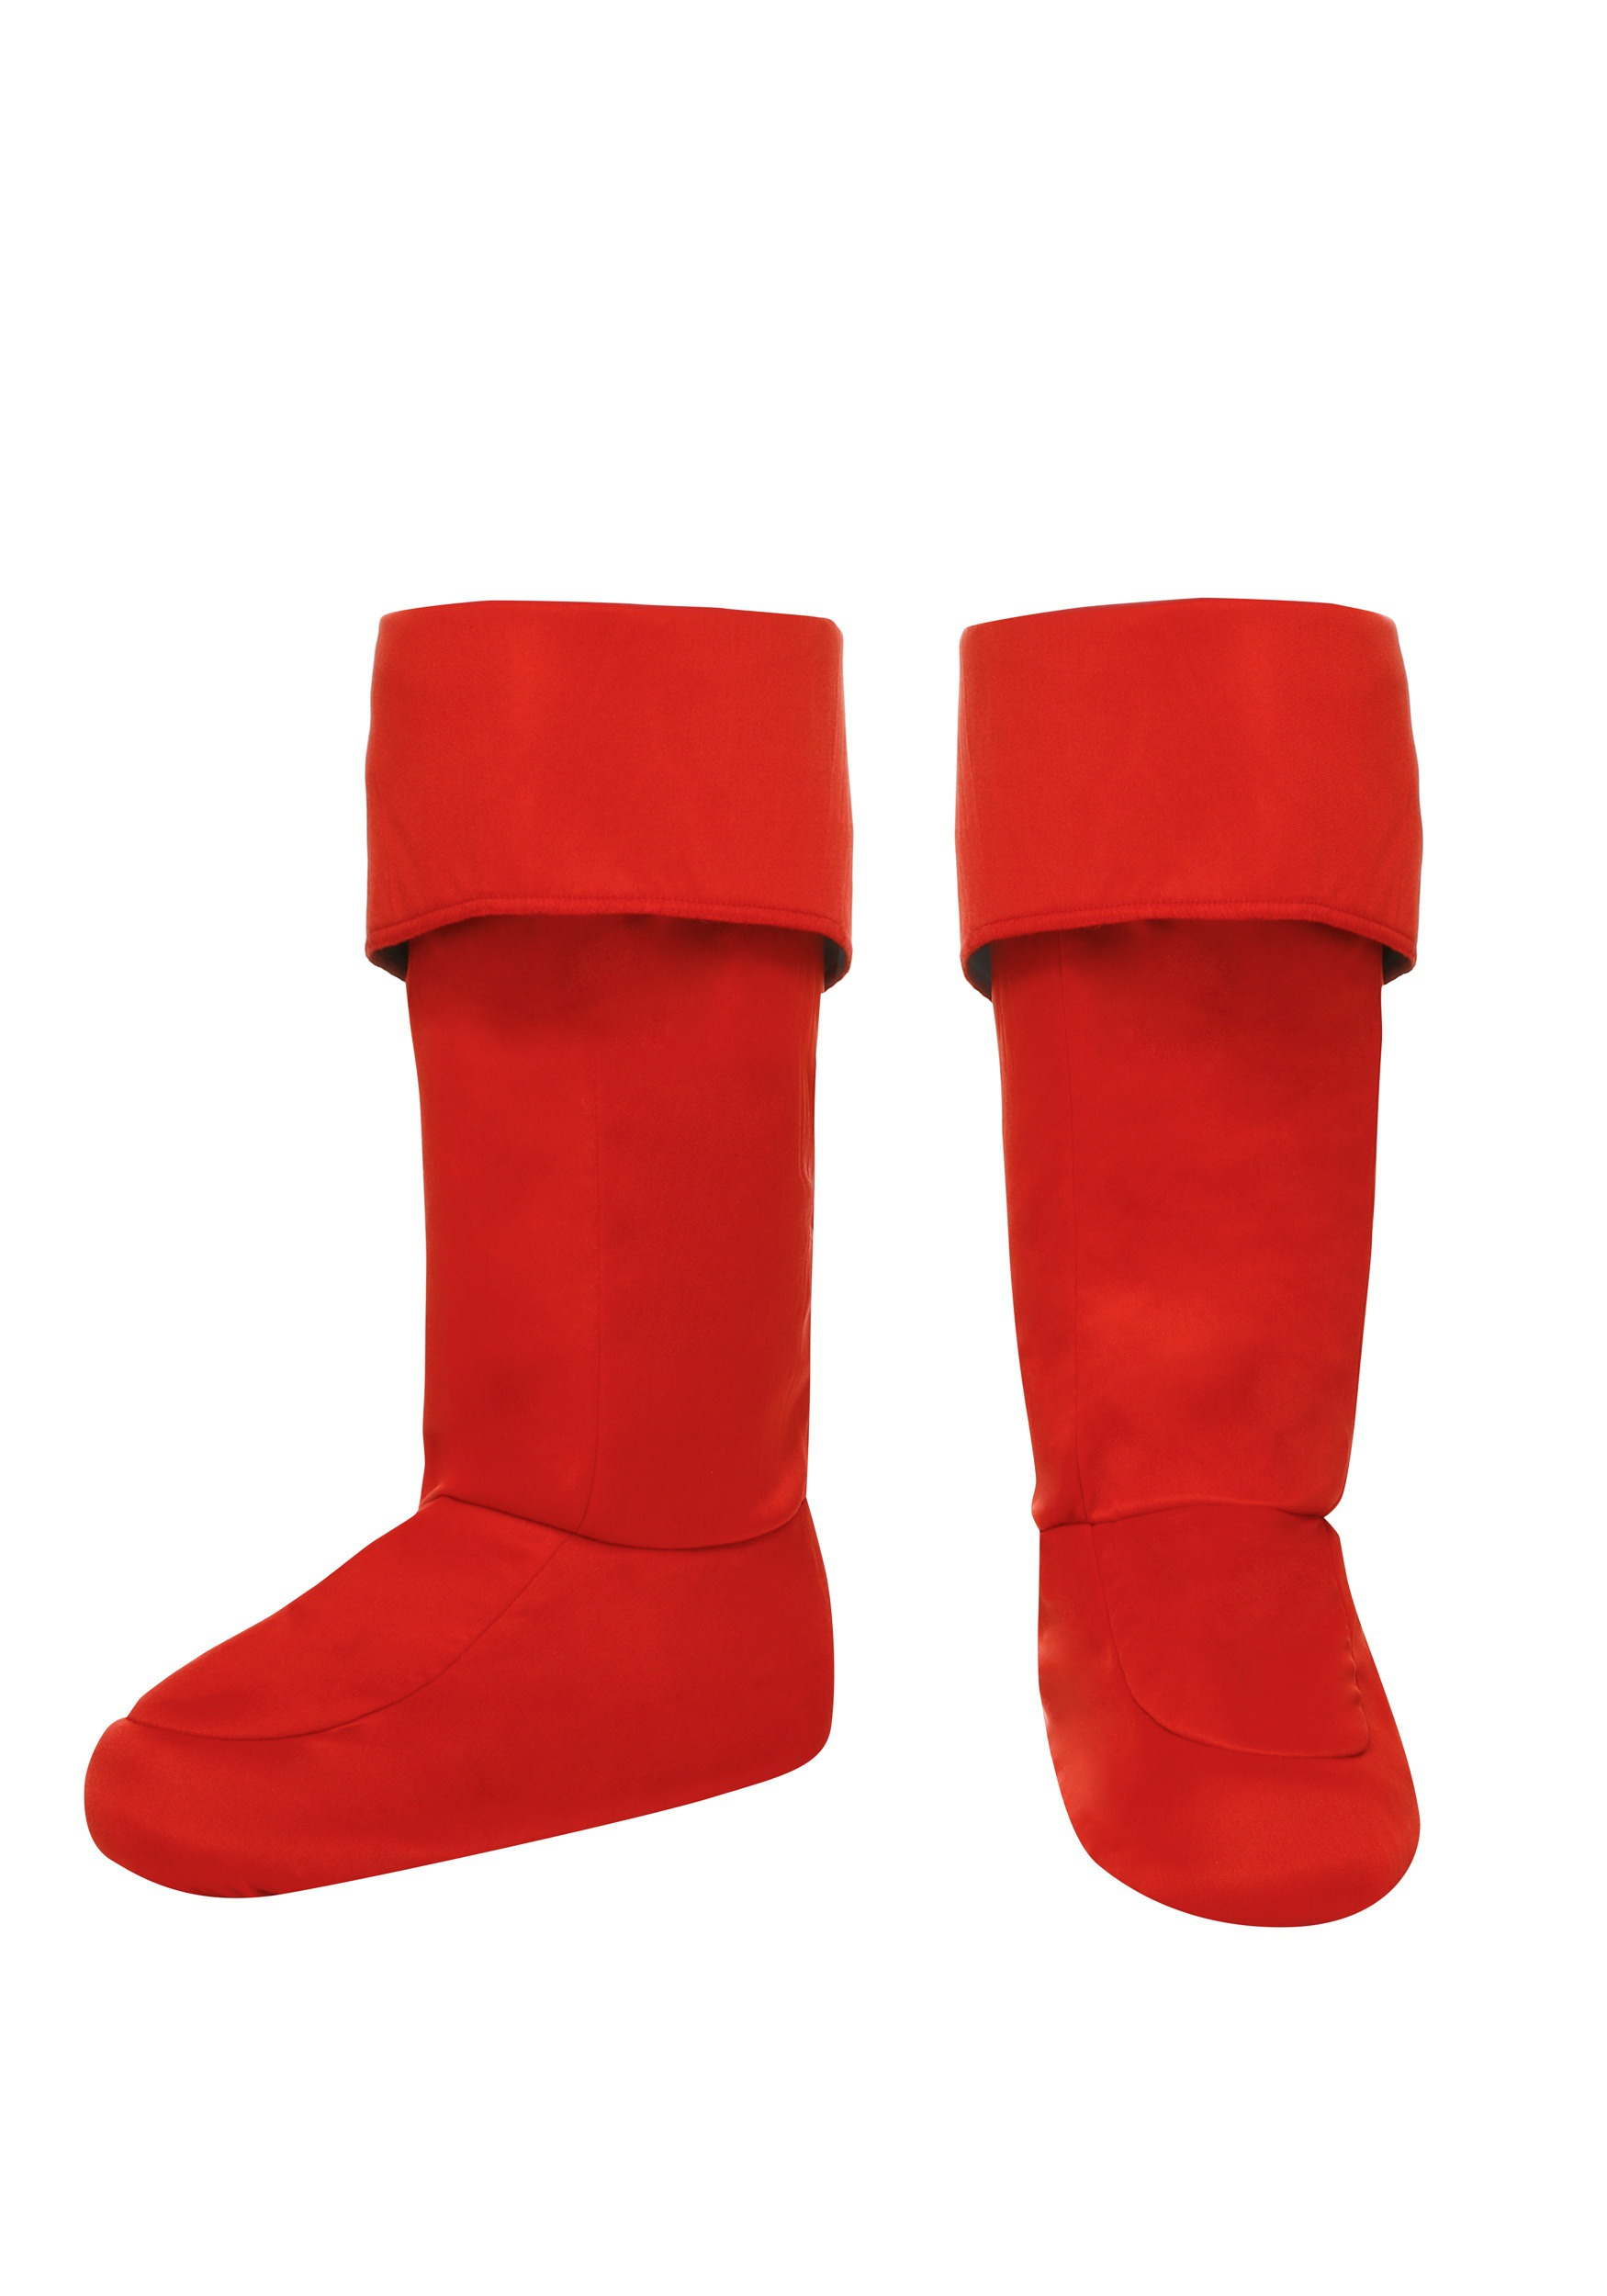 Adult Red Superhero Boot Covers